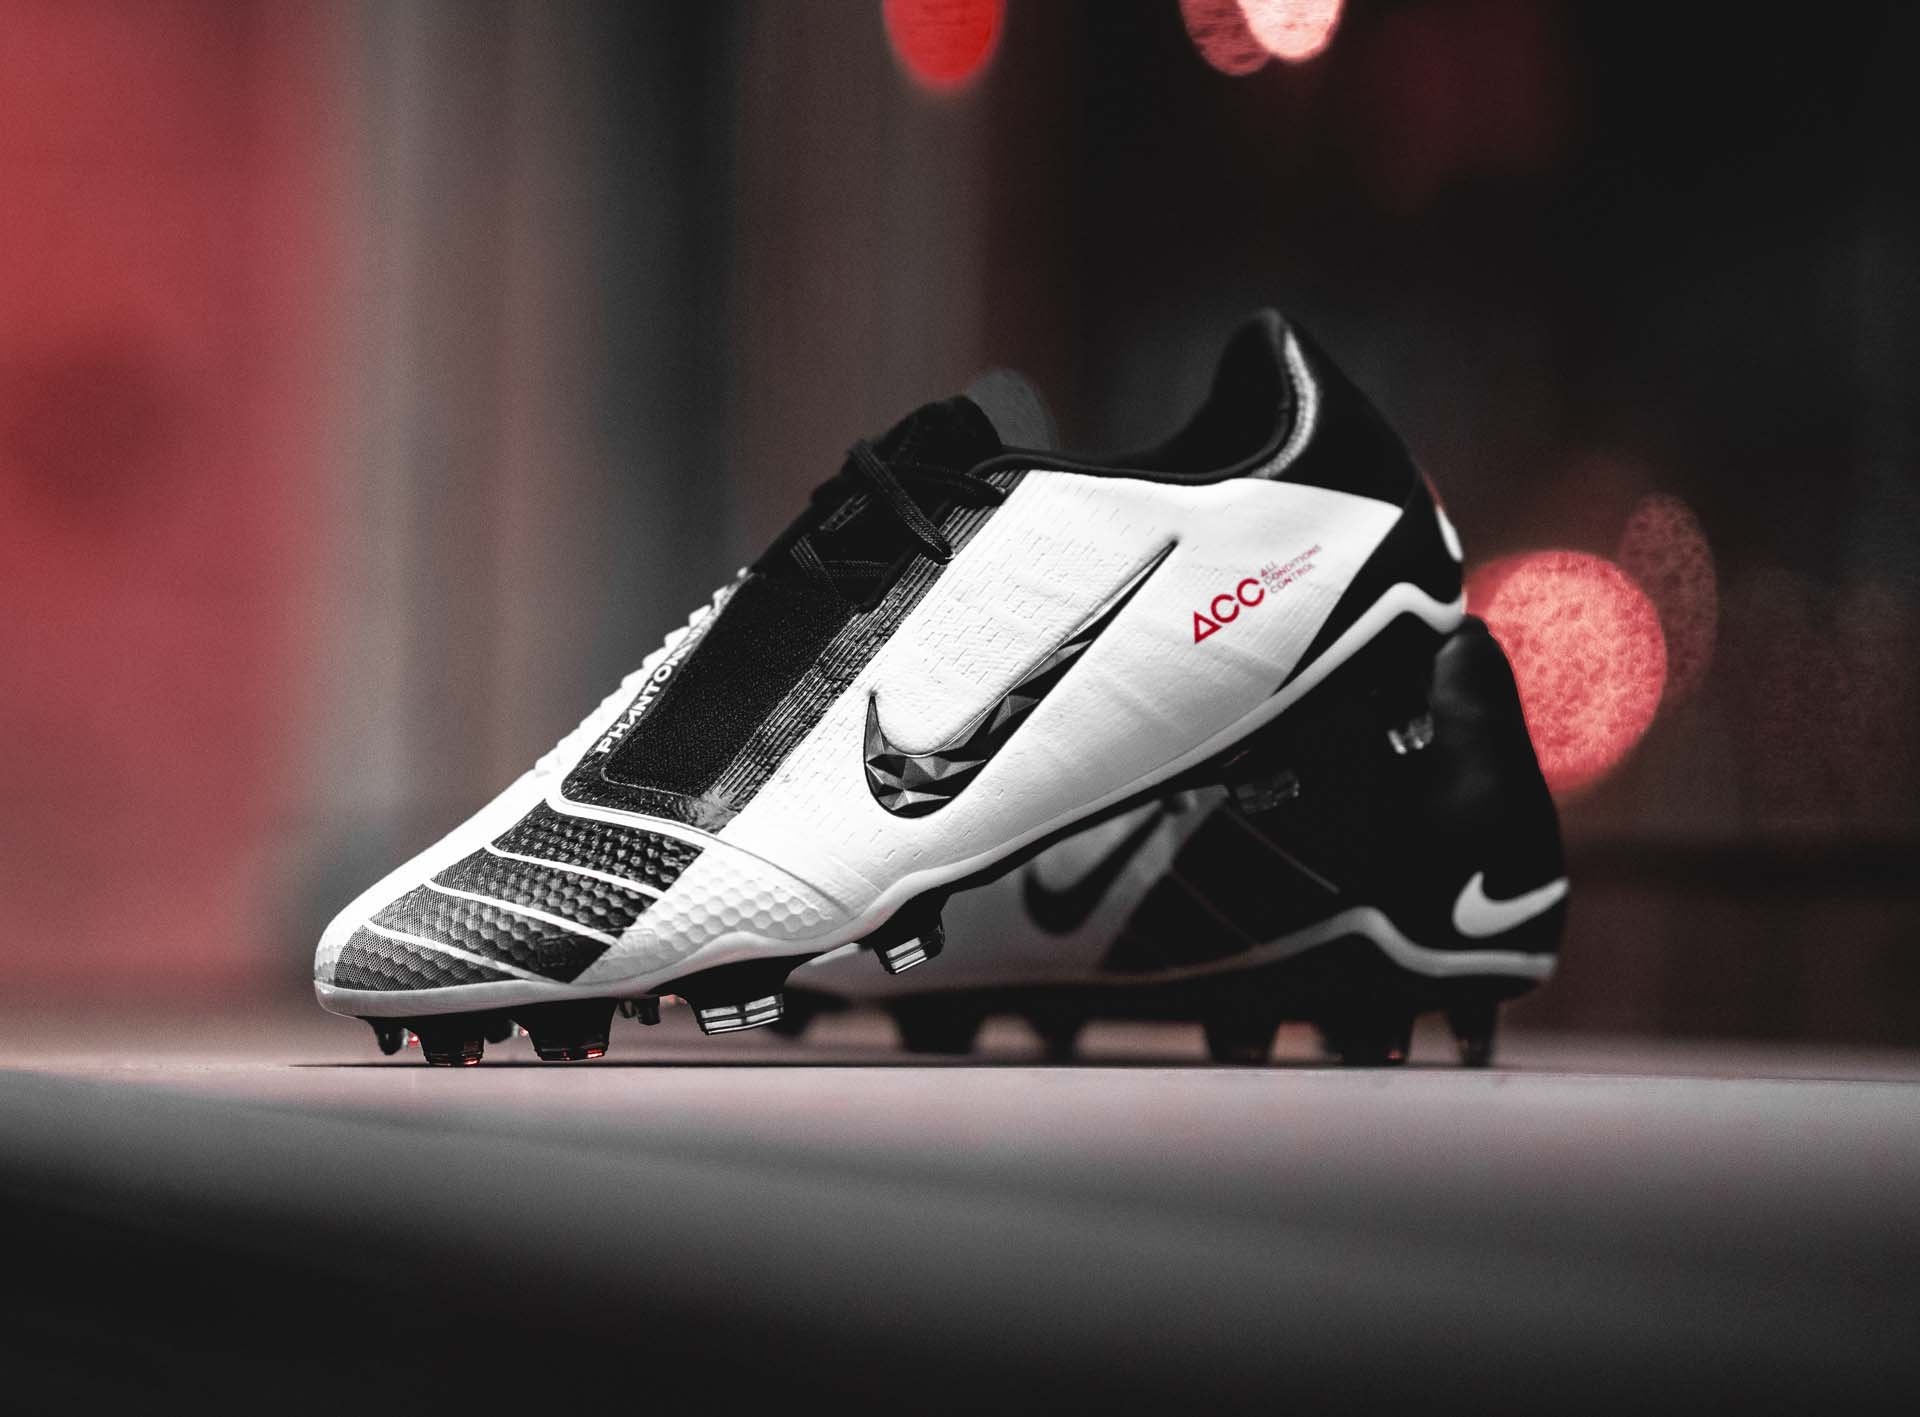 Nike Phantom Venom - 'Future DNA'